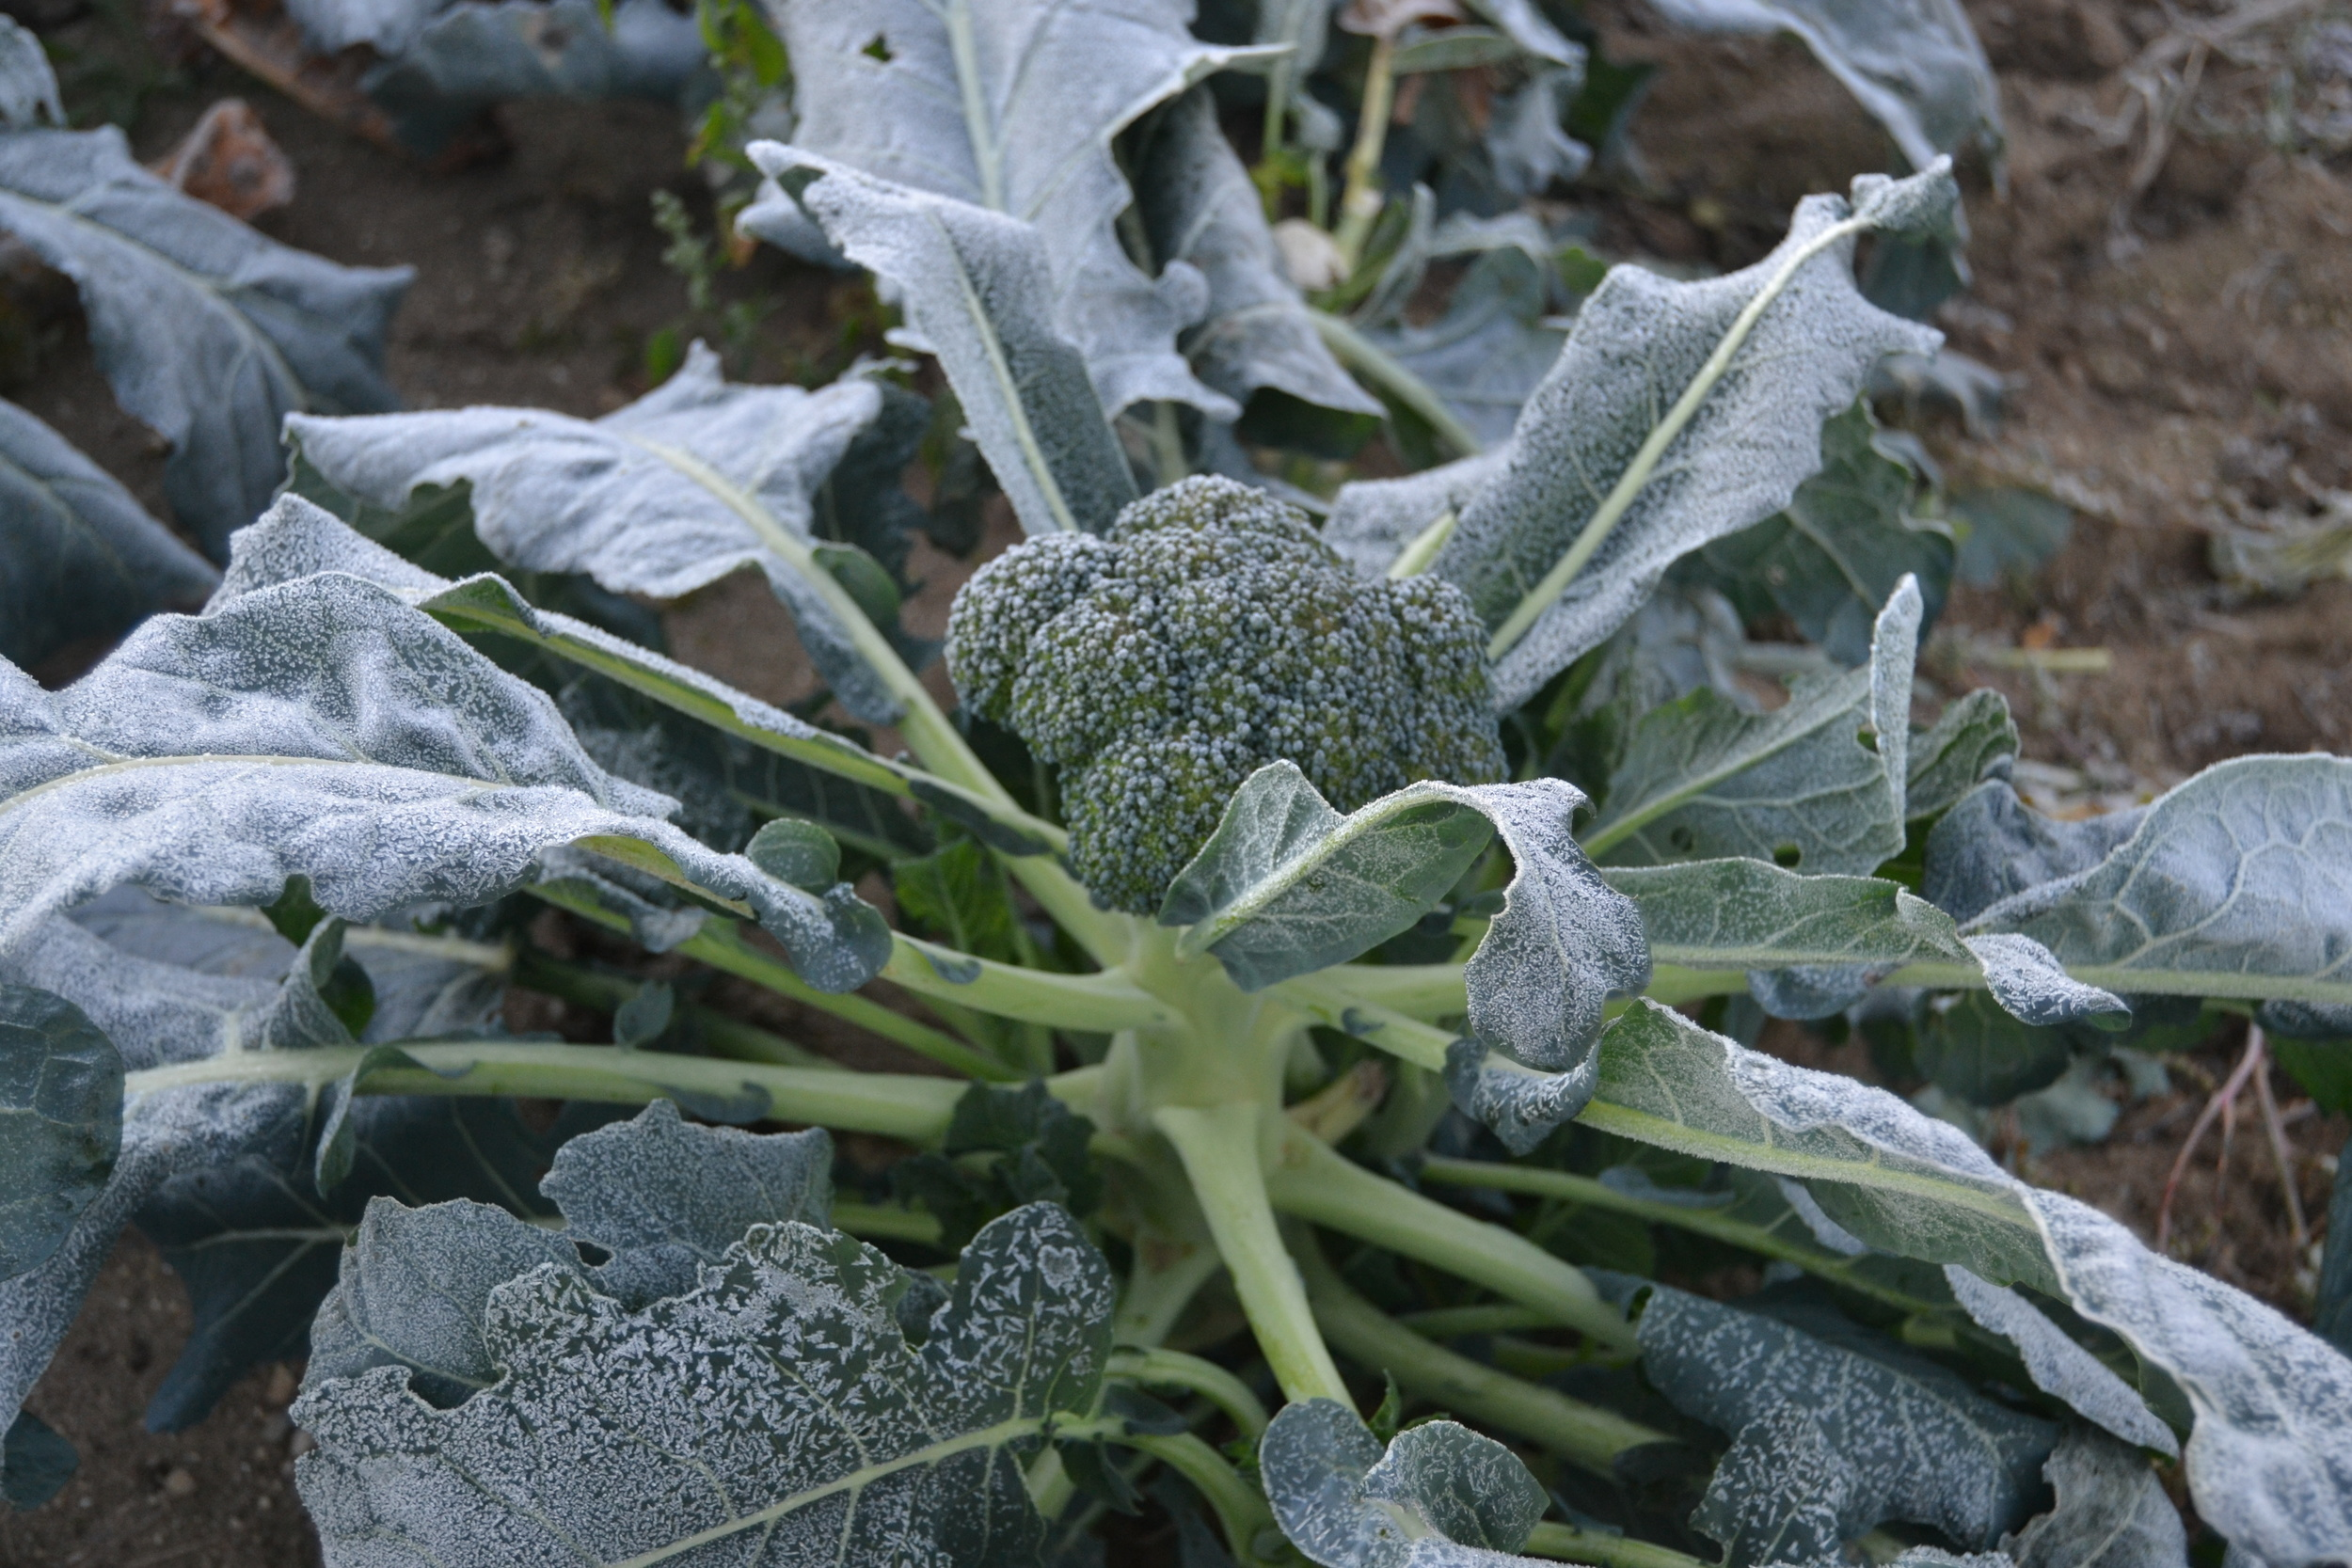 Icy broccoli on Monday morning after the unusually low temps on Sunday night